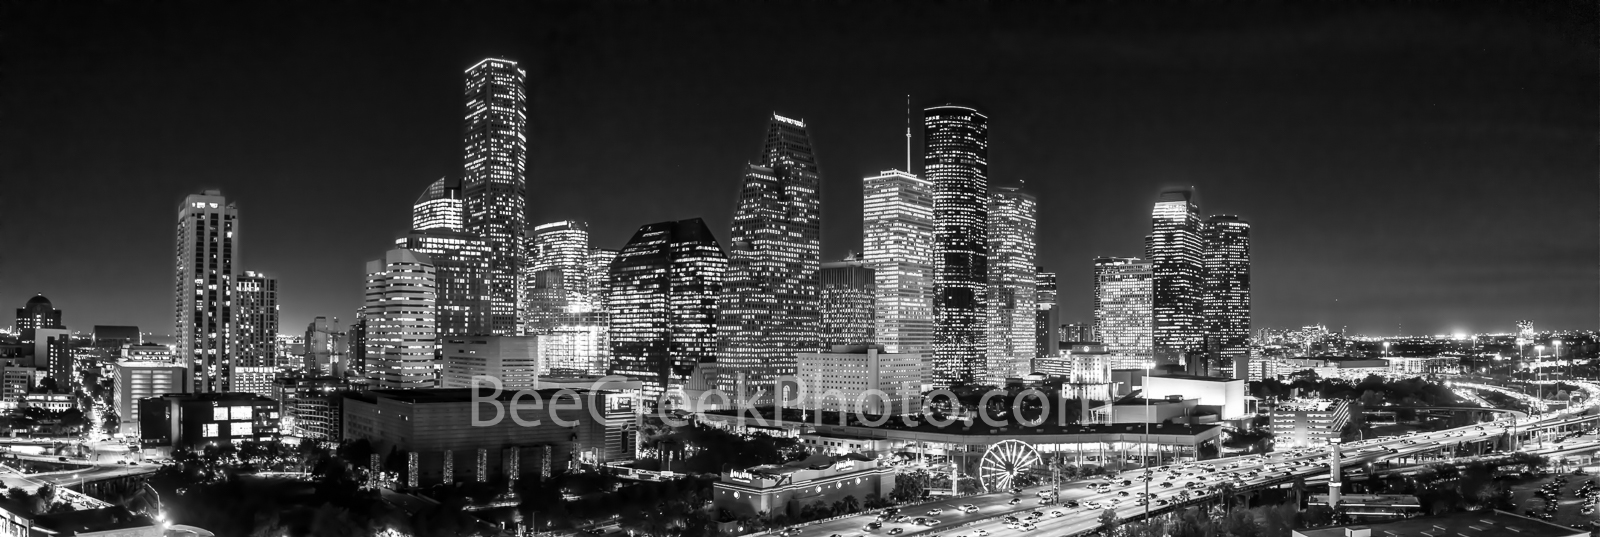 Houston, skyline, Houston skyline, black and white, BW, night, aerial, panorama, pano, city of houston, downtown houston, skyscrapers, buildings, high rise, IH45, museum district, art, culture, music,, photo